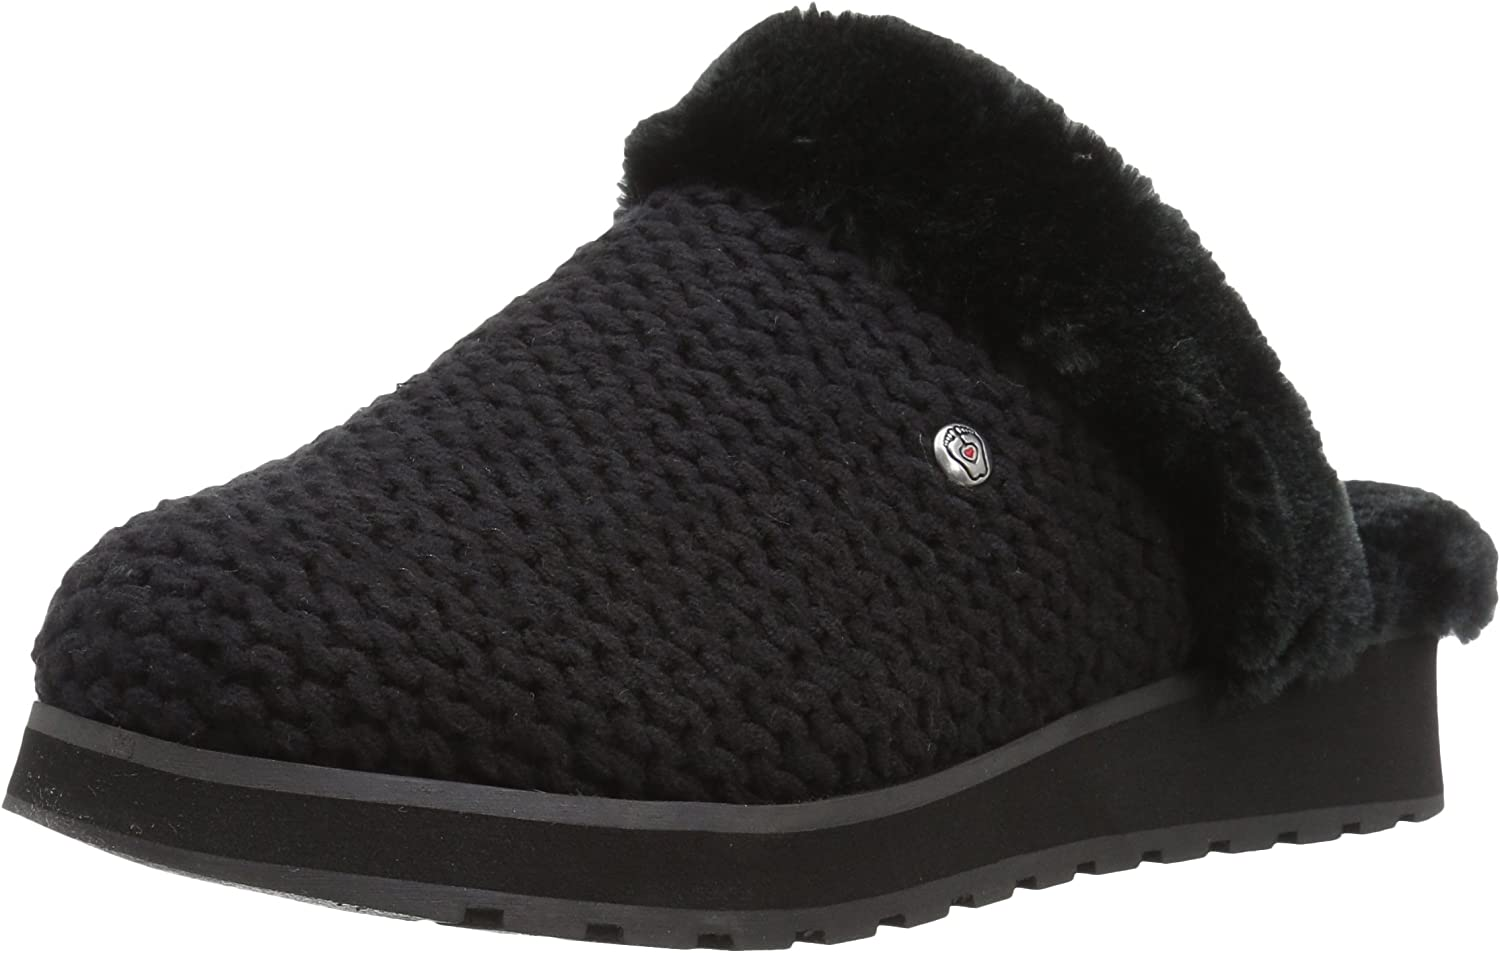 Skechers Womens Keepsakes High - Nubby Knit Clog